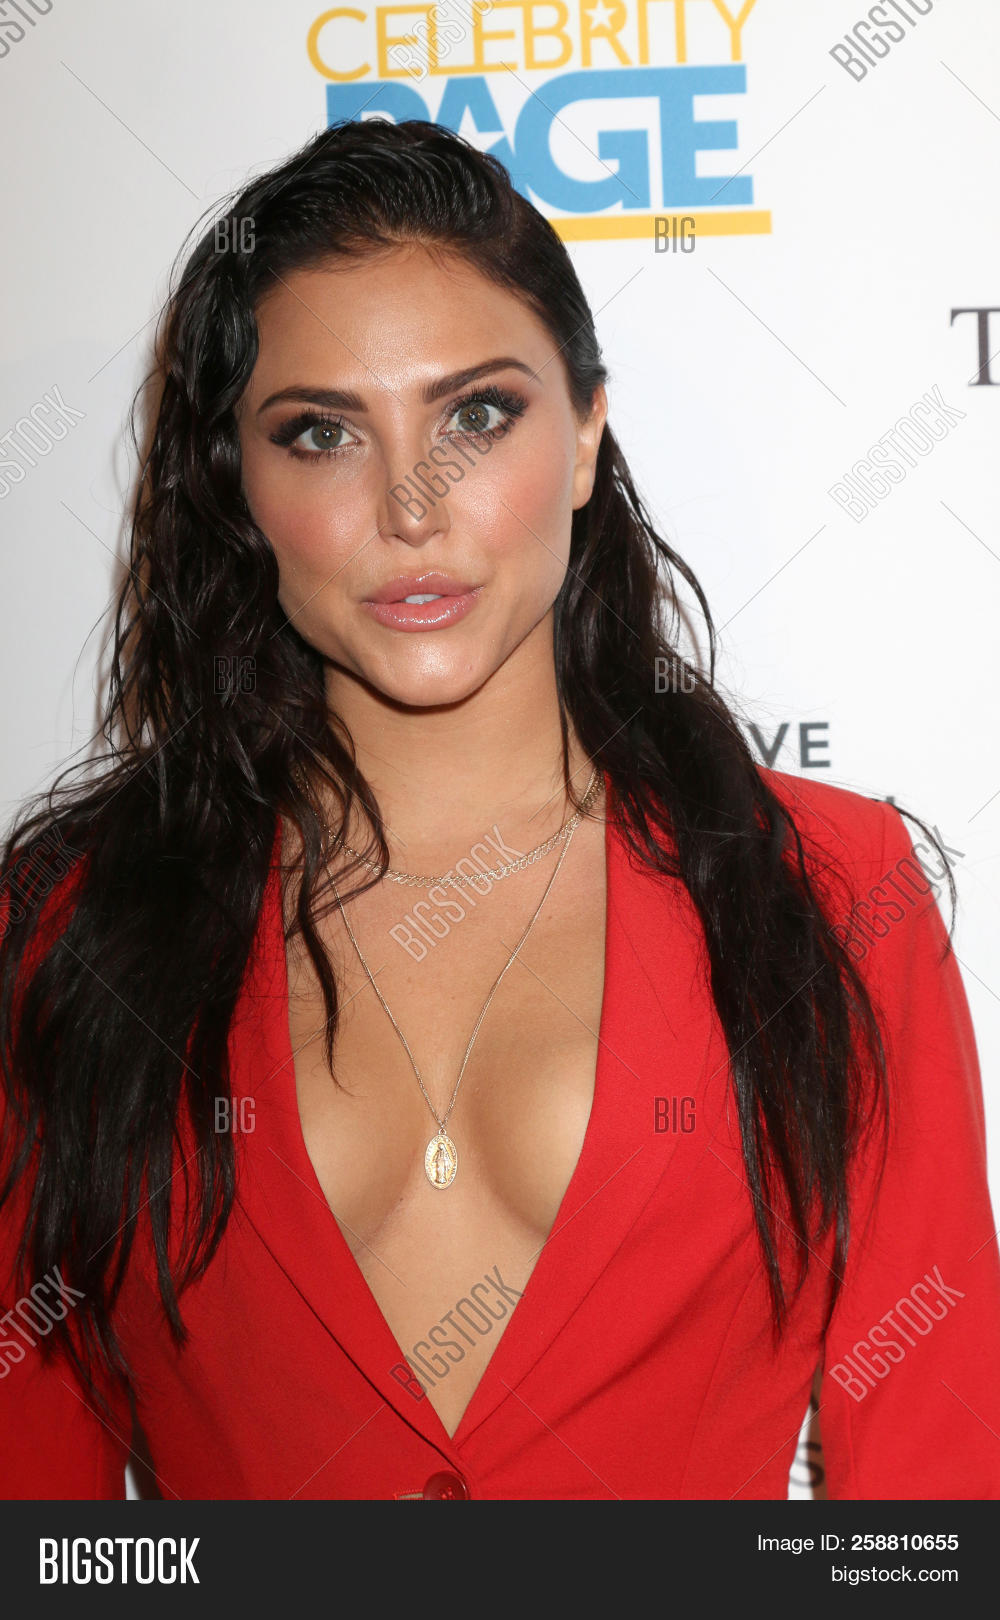 160e9532101 LOS ANGELES - SEP 15: Cassie Scerbo at the 2018 Television Industry  Advocacy Awards at